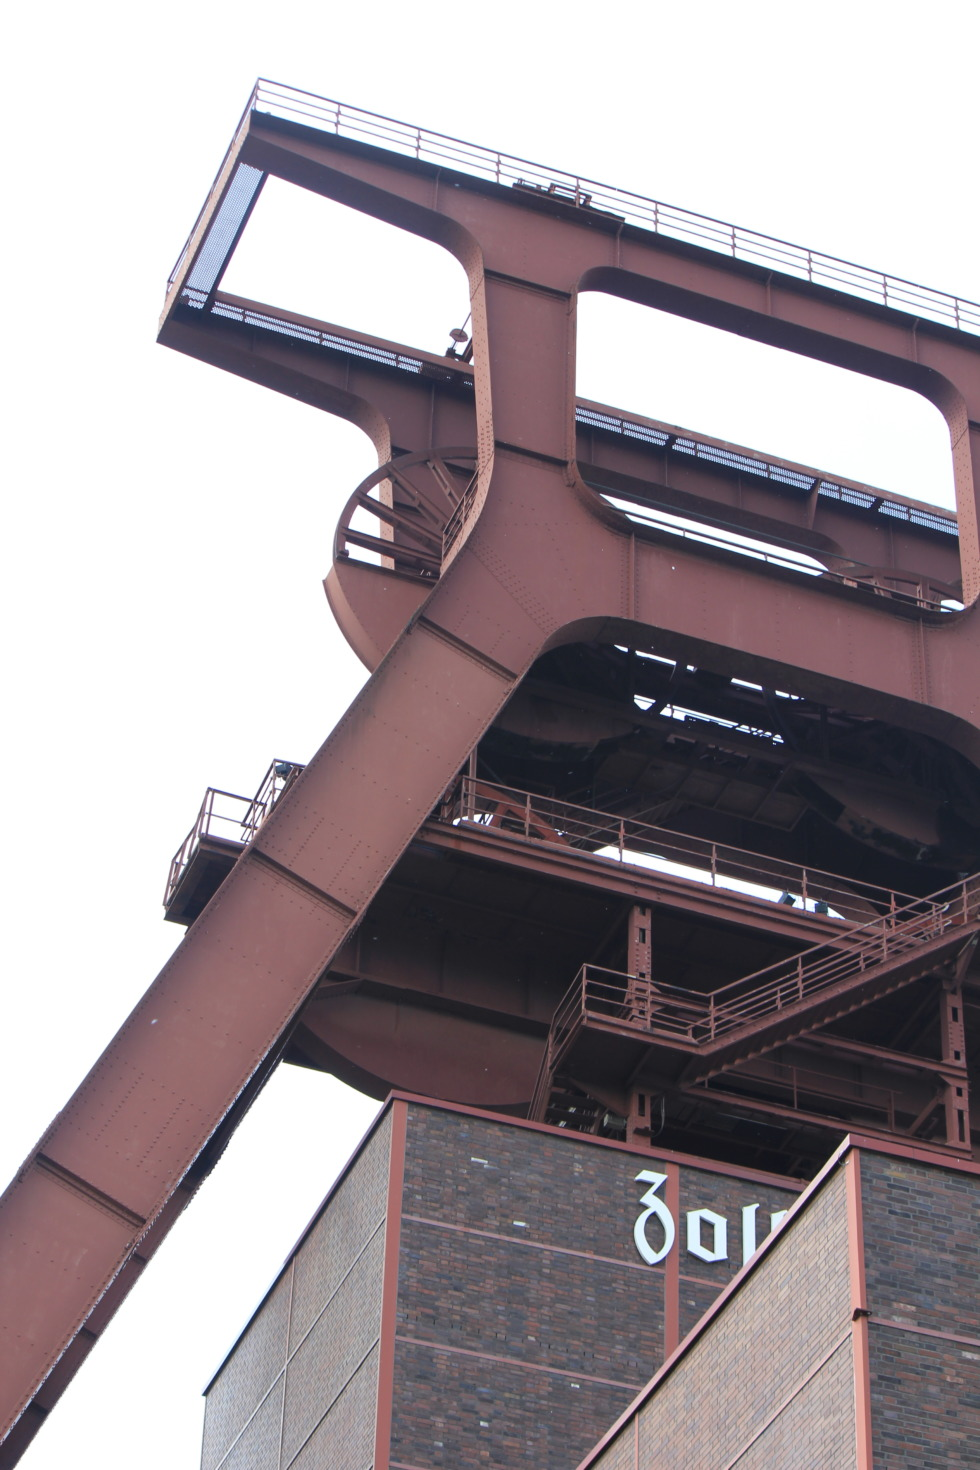 Huge headframe at Zeche Zollverein, Essen